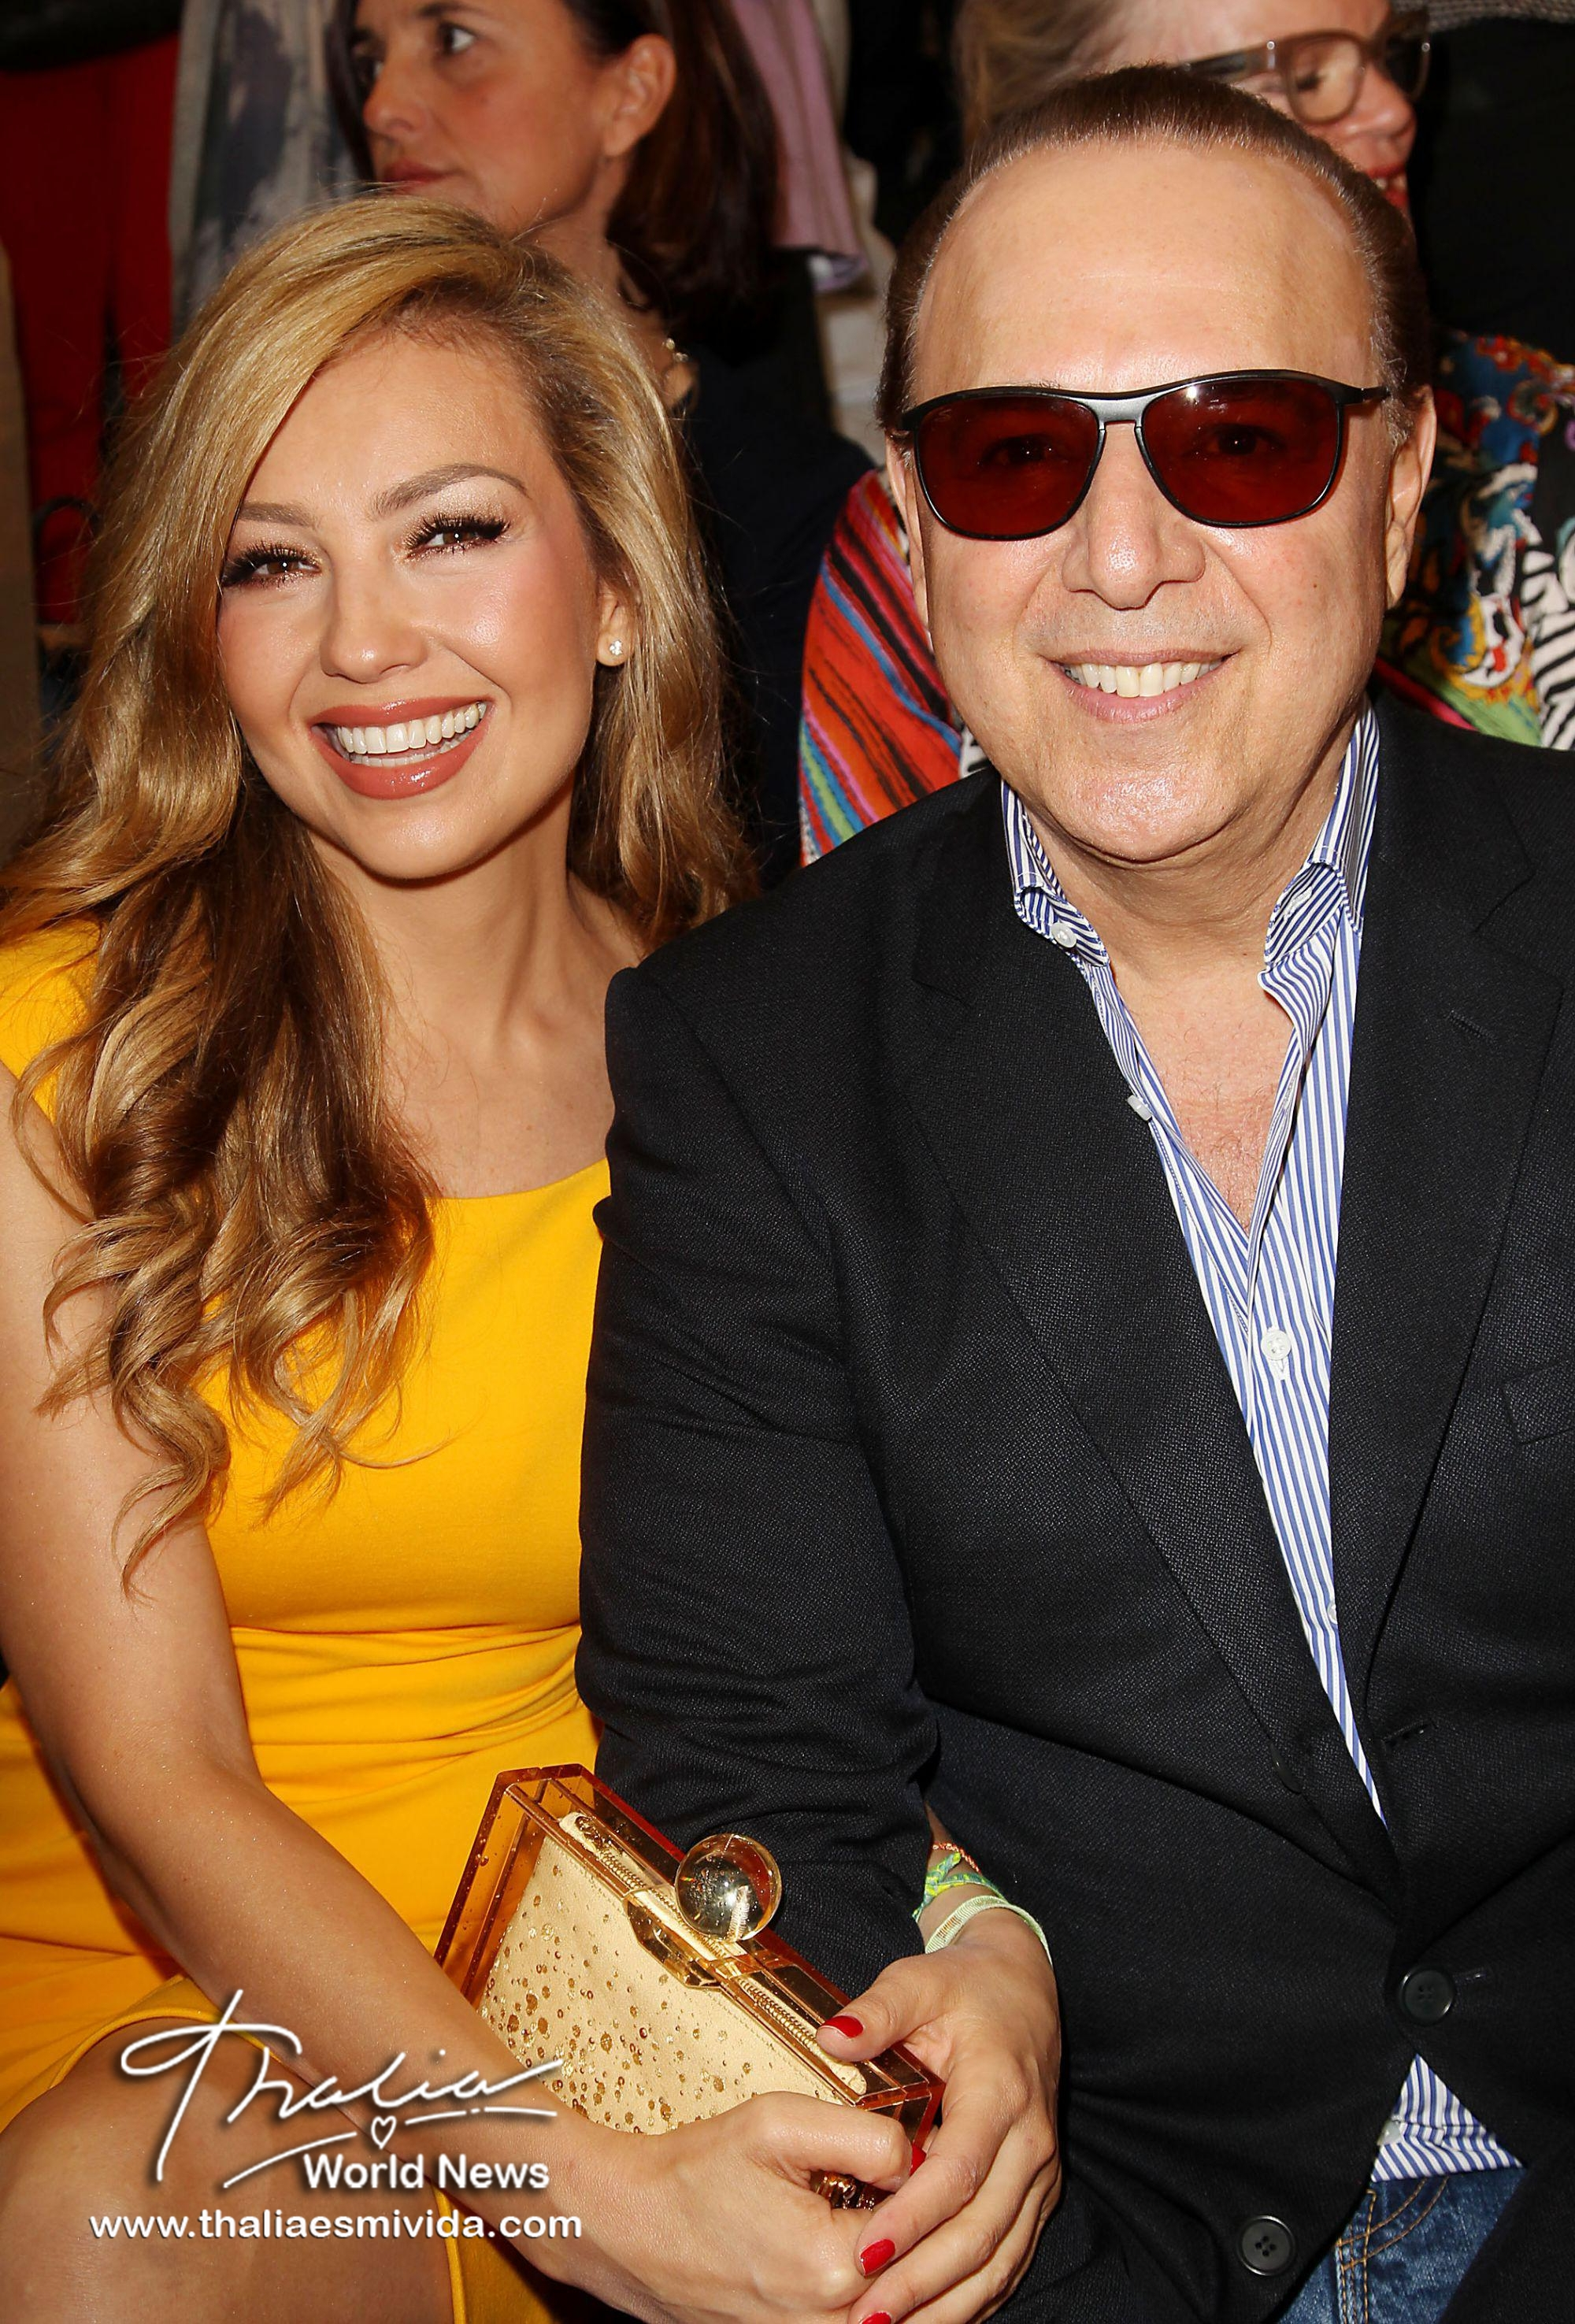 Thalia and Tommy NYFW 2)